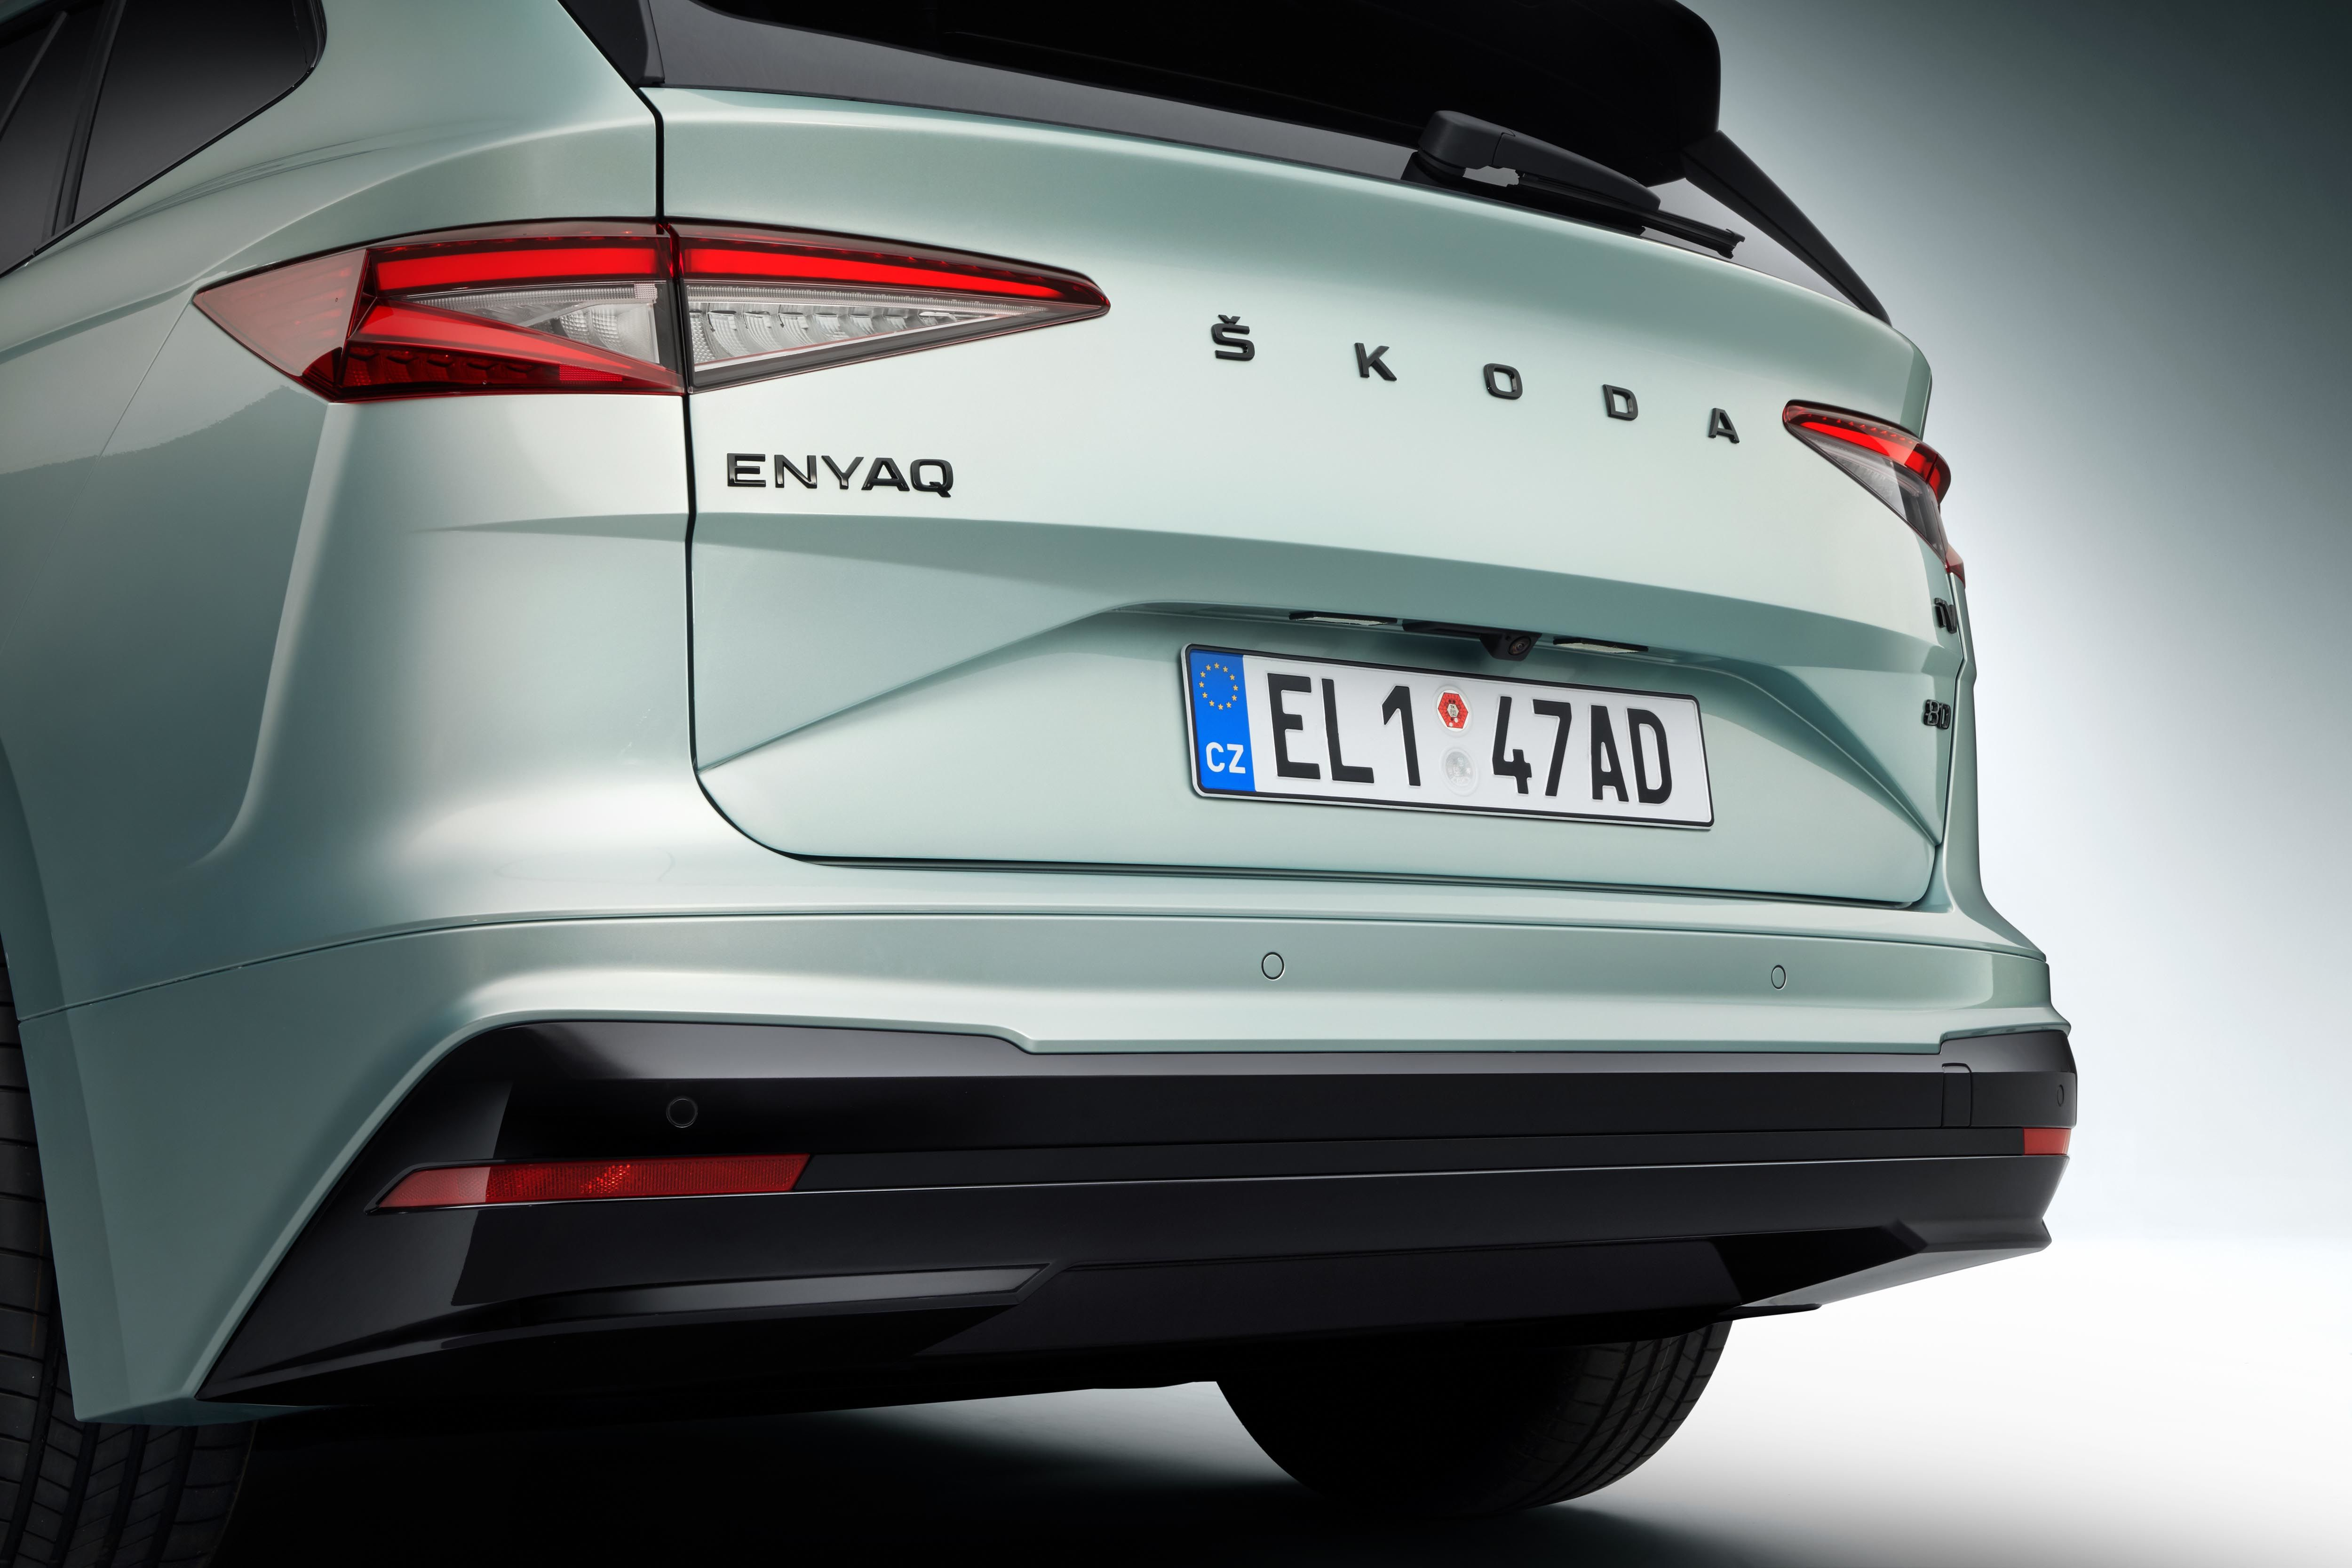 Skoda Enyaq iV will come with a set of three battery packs. The 55kWh battery provides 340km of driving range, the 62kWh battery offers 390km of driving range and the 82kWh battery provides 510km of driving range.